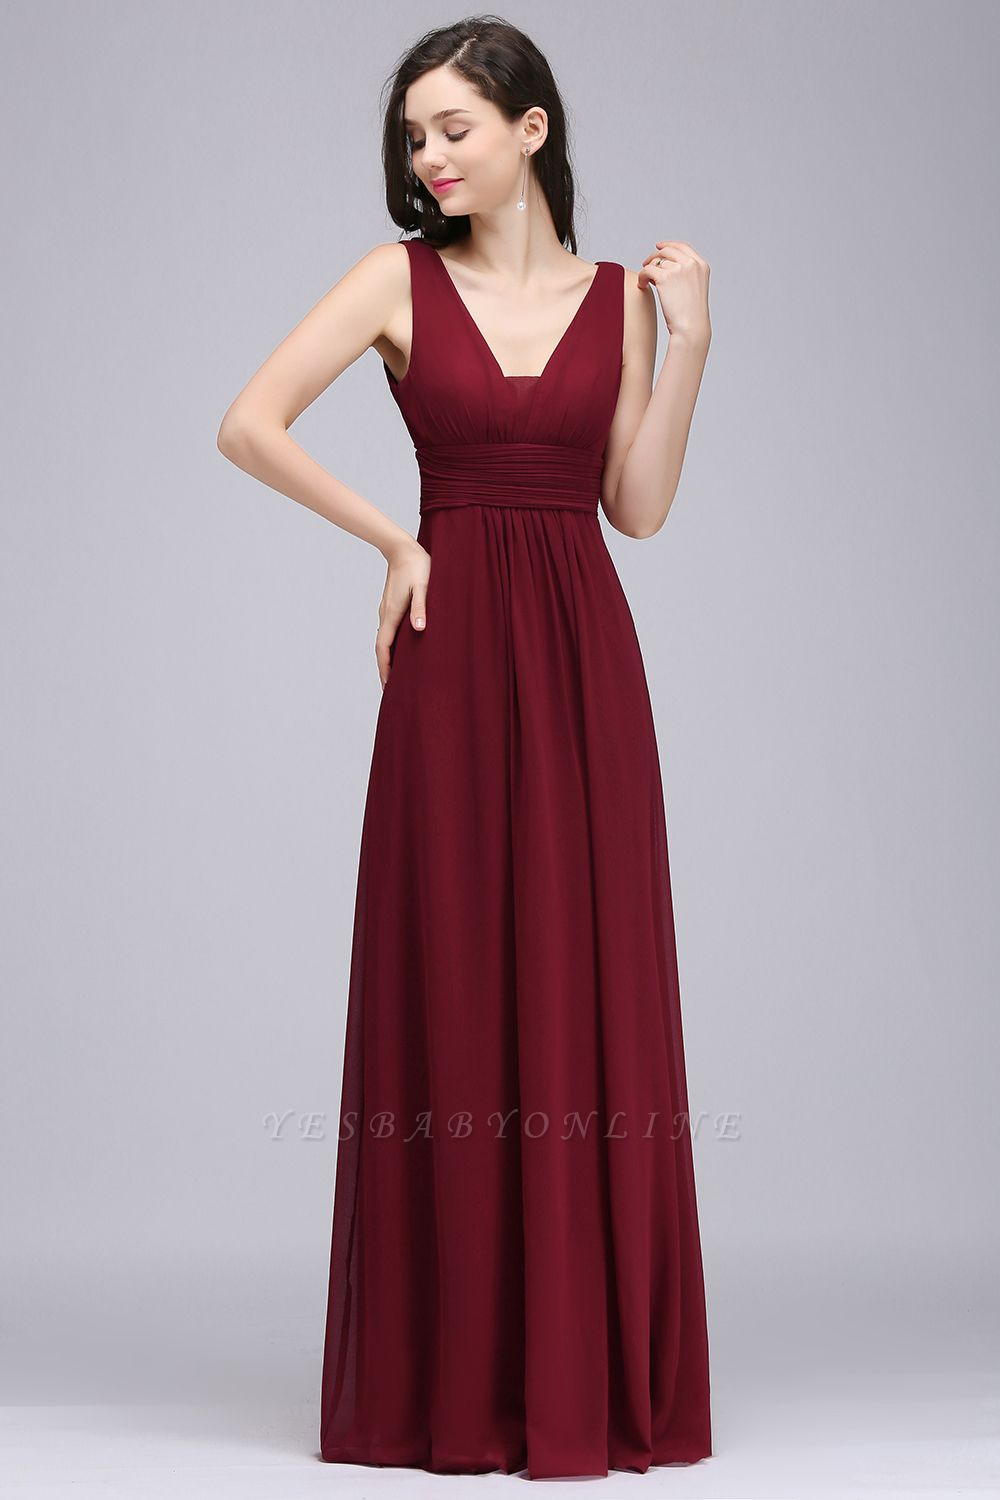 ALEXA | Sheath V Neck Burgundy Chiffon Long Evening Dresses